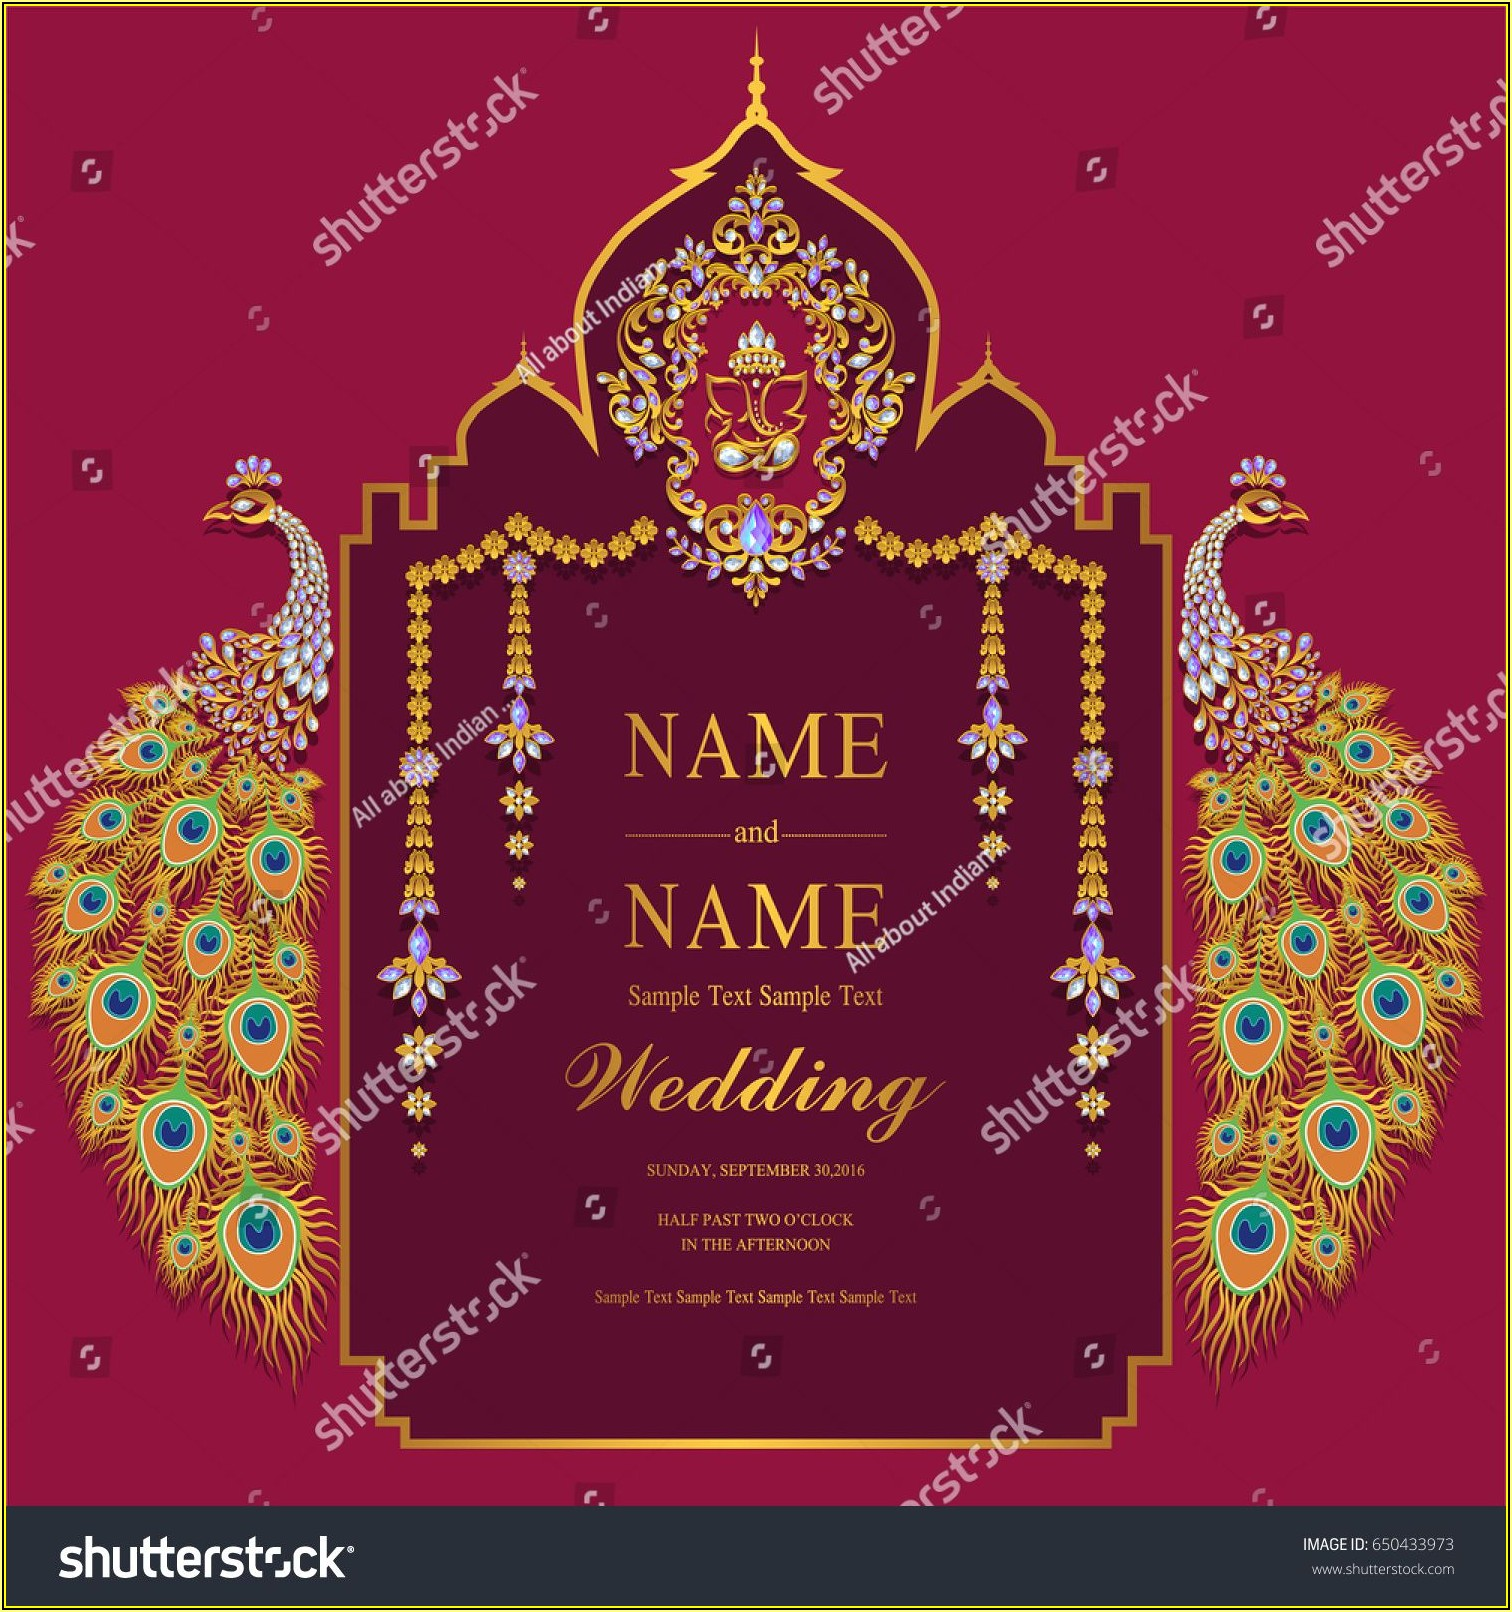 Indian Wedding Invitation Card Template With Gold Peacock Patterned And Crystals On Paper Color